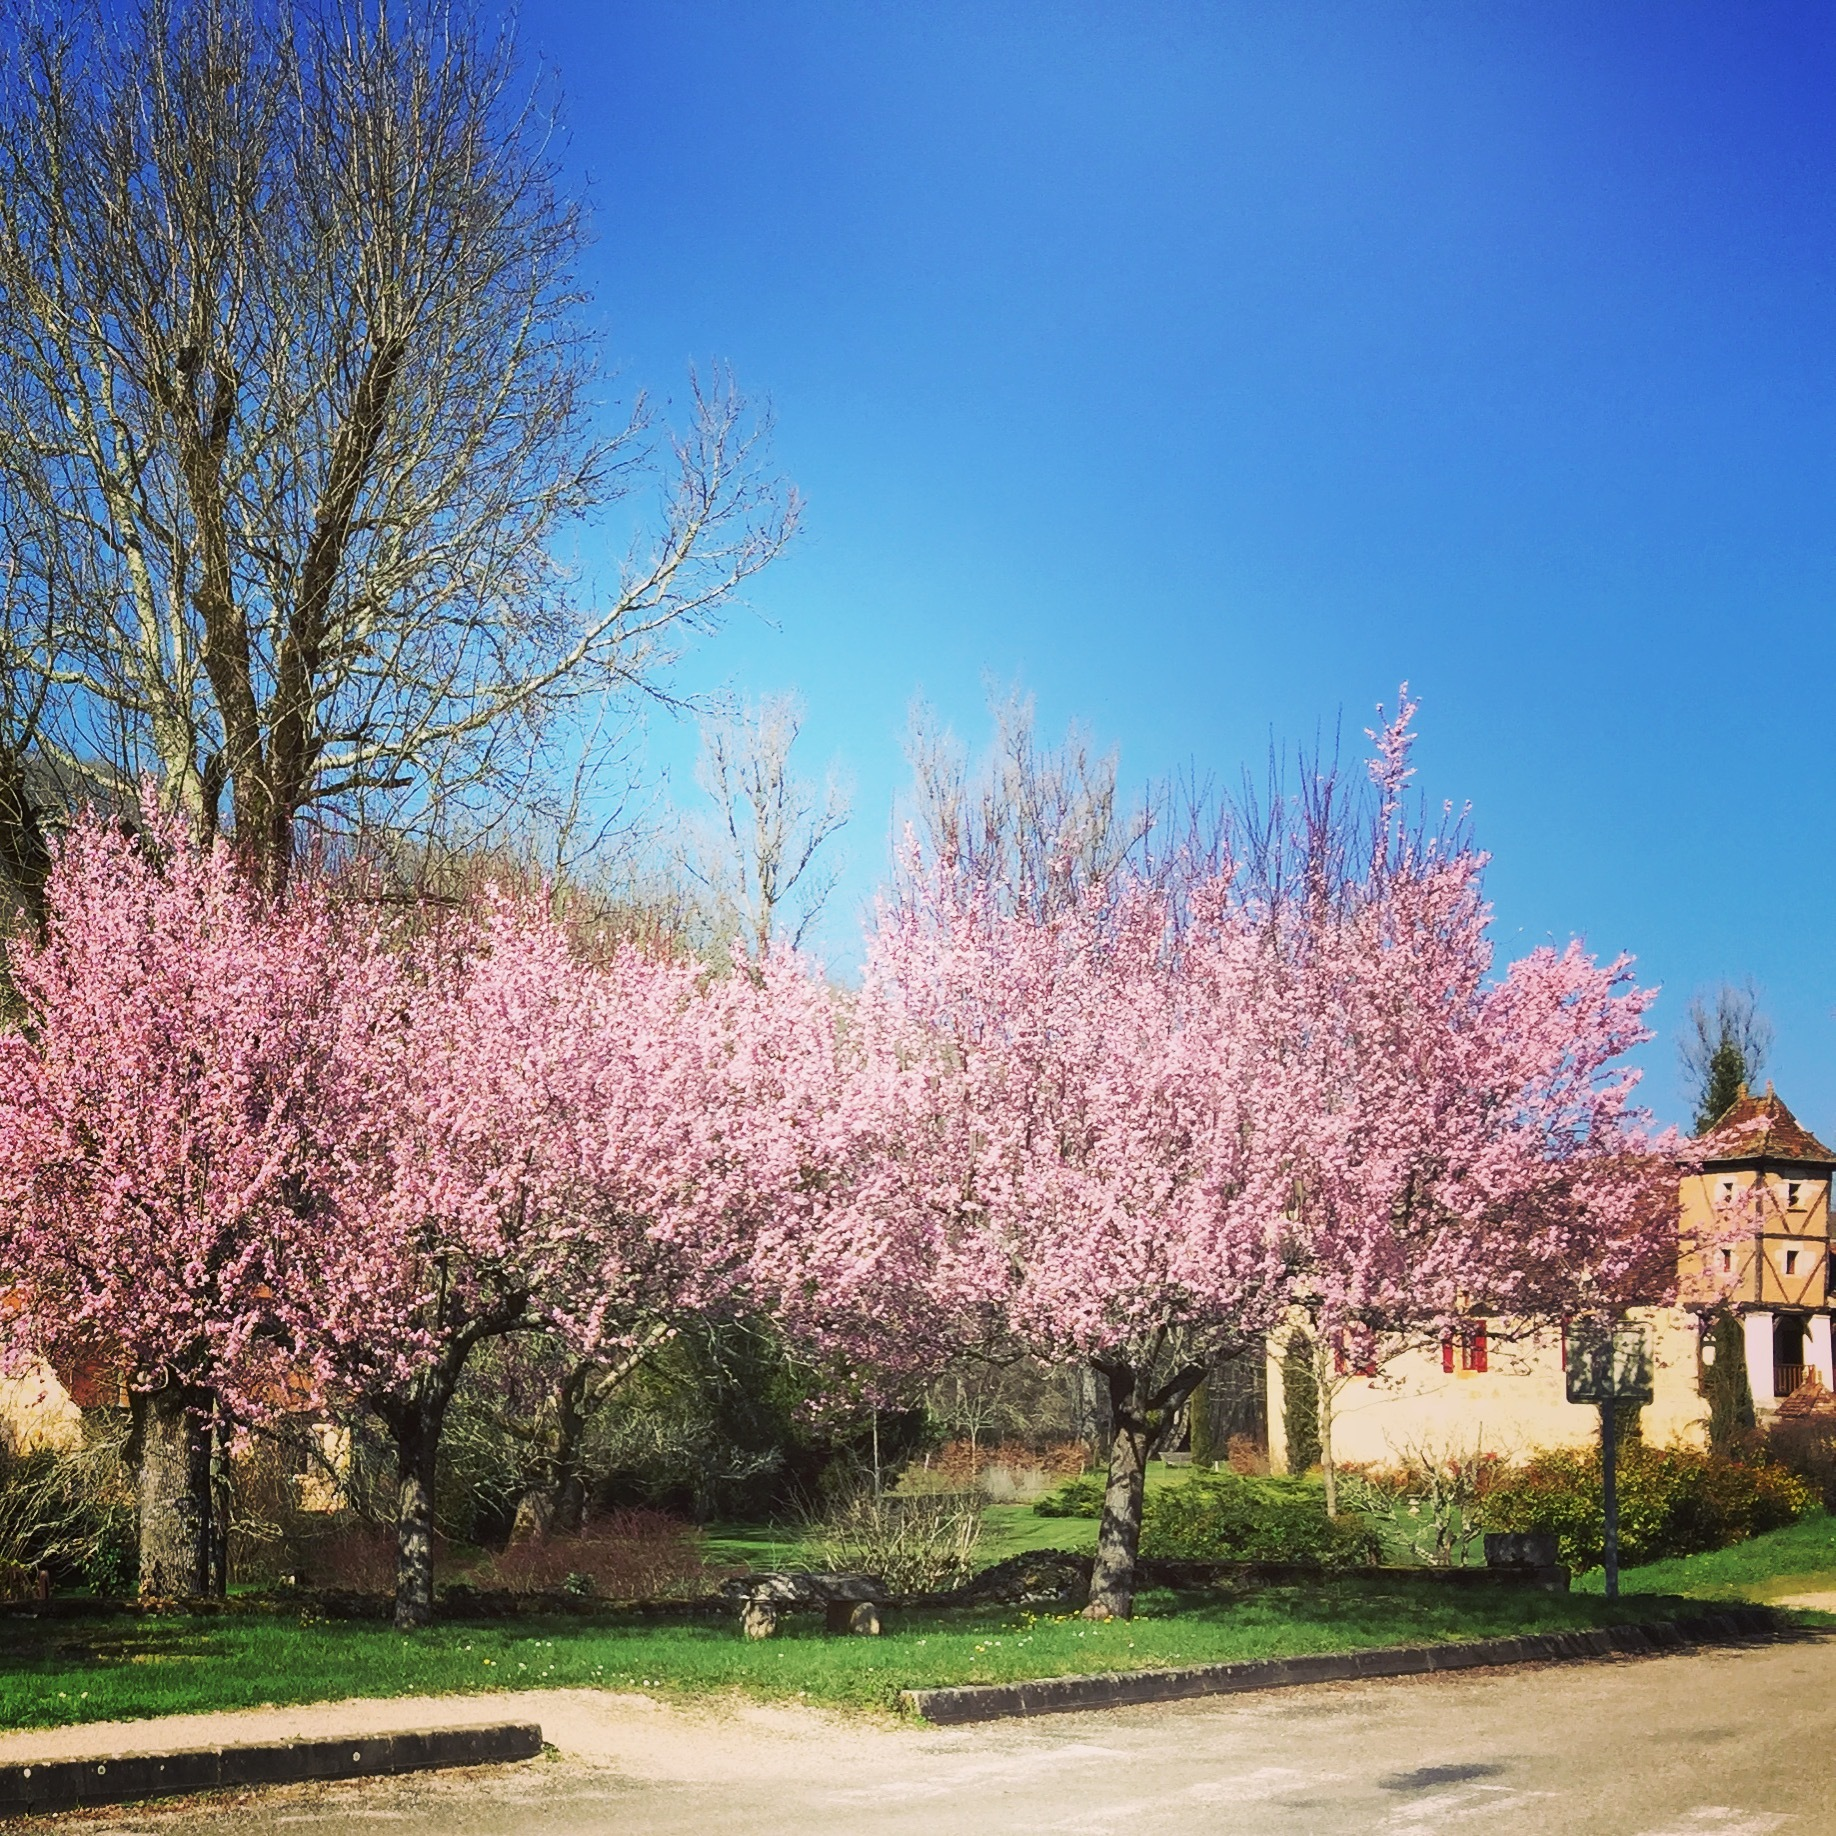 Spring arrives in Gigouzac